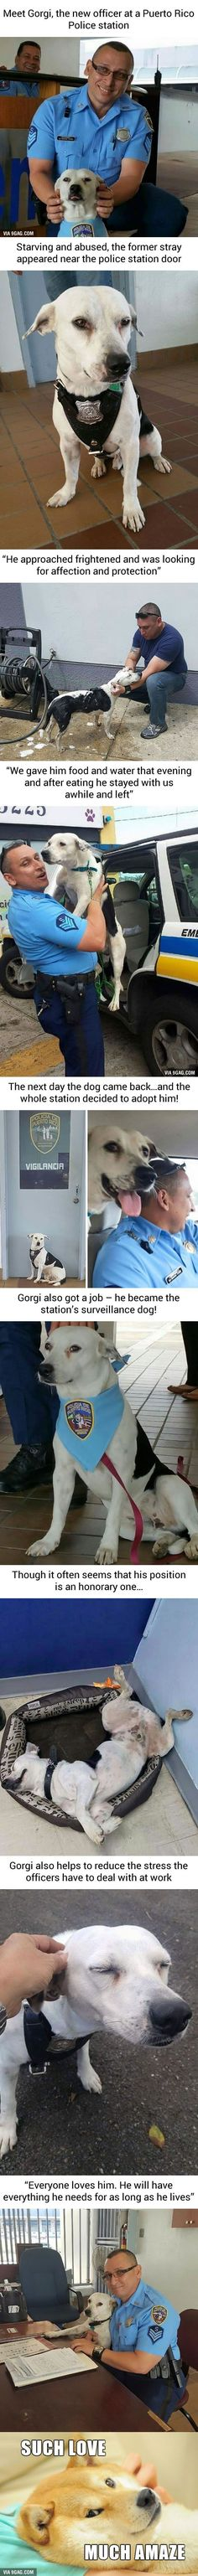 Stray Dog Walks Into Police Station, Gets A Job - 9GAG